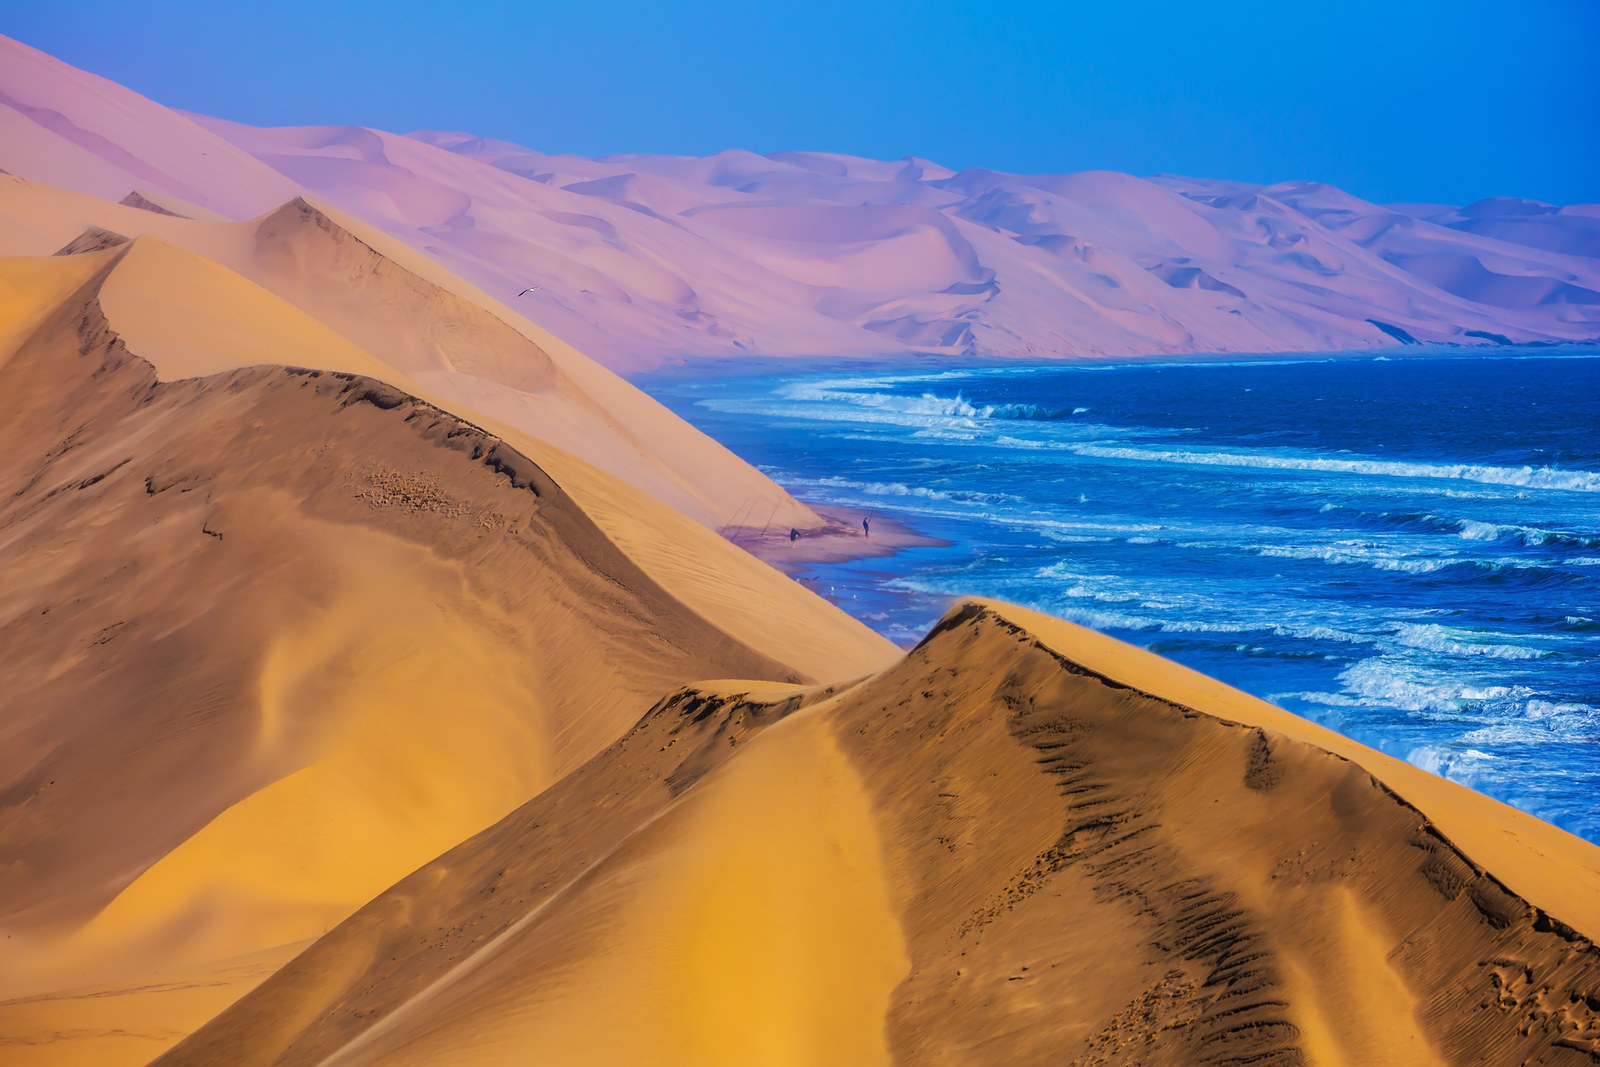 Namibia: Namib-Naukluft National Park -  So barren, the majority of this park isn't accessible for people to visit. At its northernmost point lies Sandwich Harbour, where enormous sand dunes blend into the Atlantic Ocean.